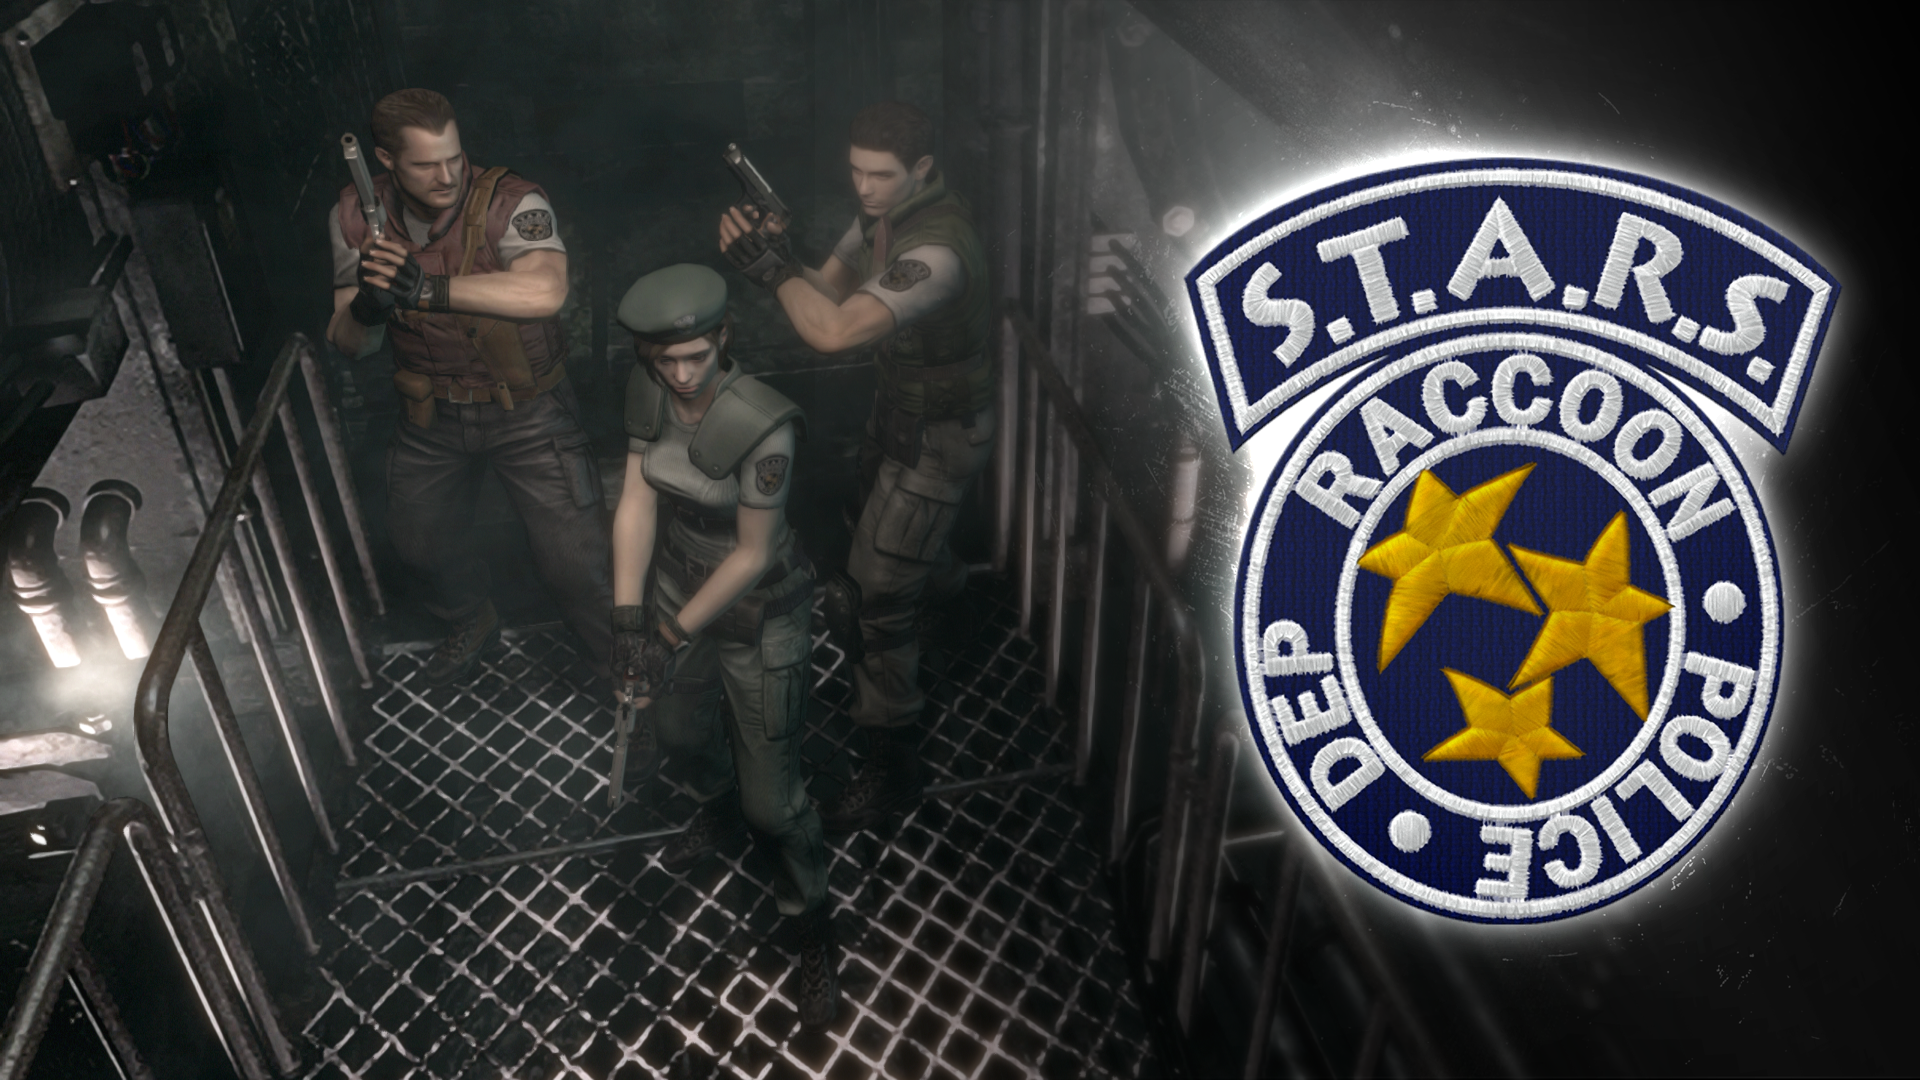 I'm a Member of S.T.A.R.S.